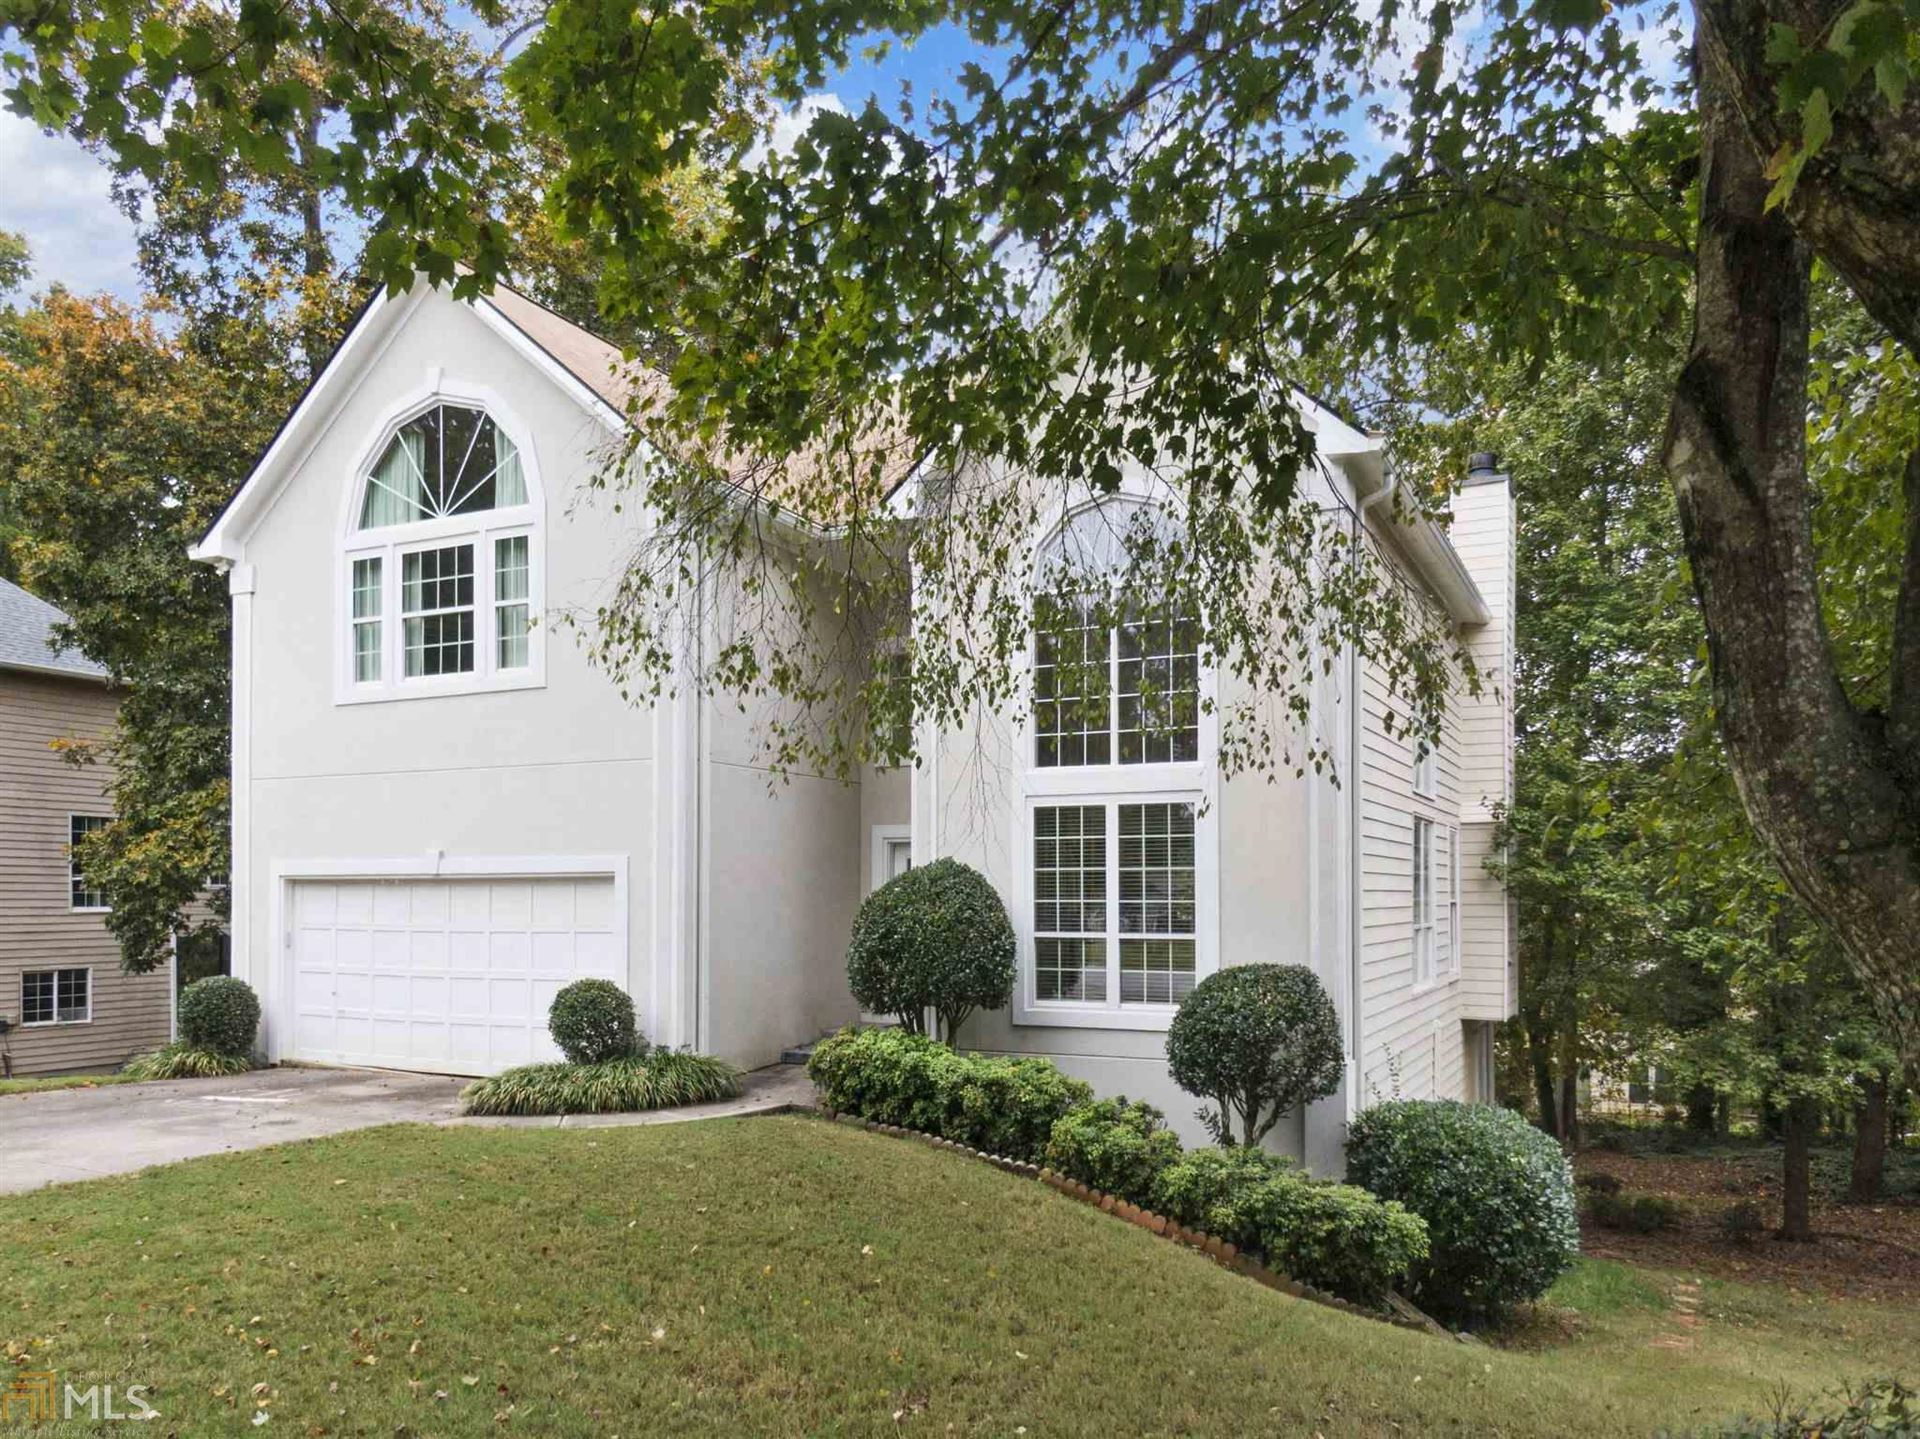 325 Falcon Creek Dr, Suwanee, GA 30024 - MLS#: 8826024